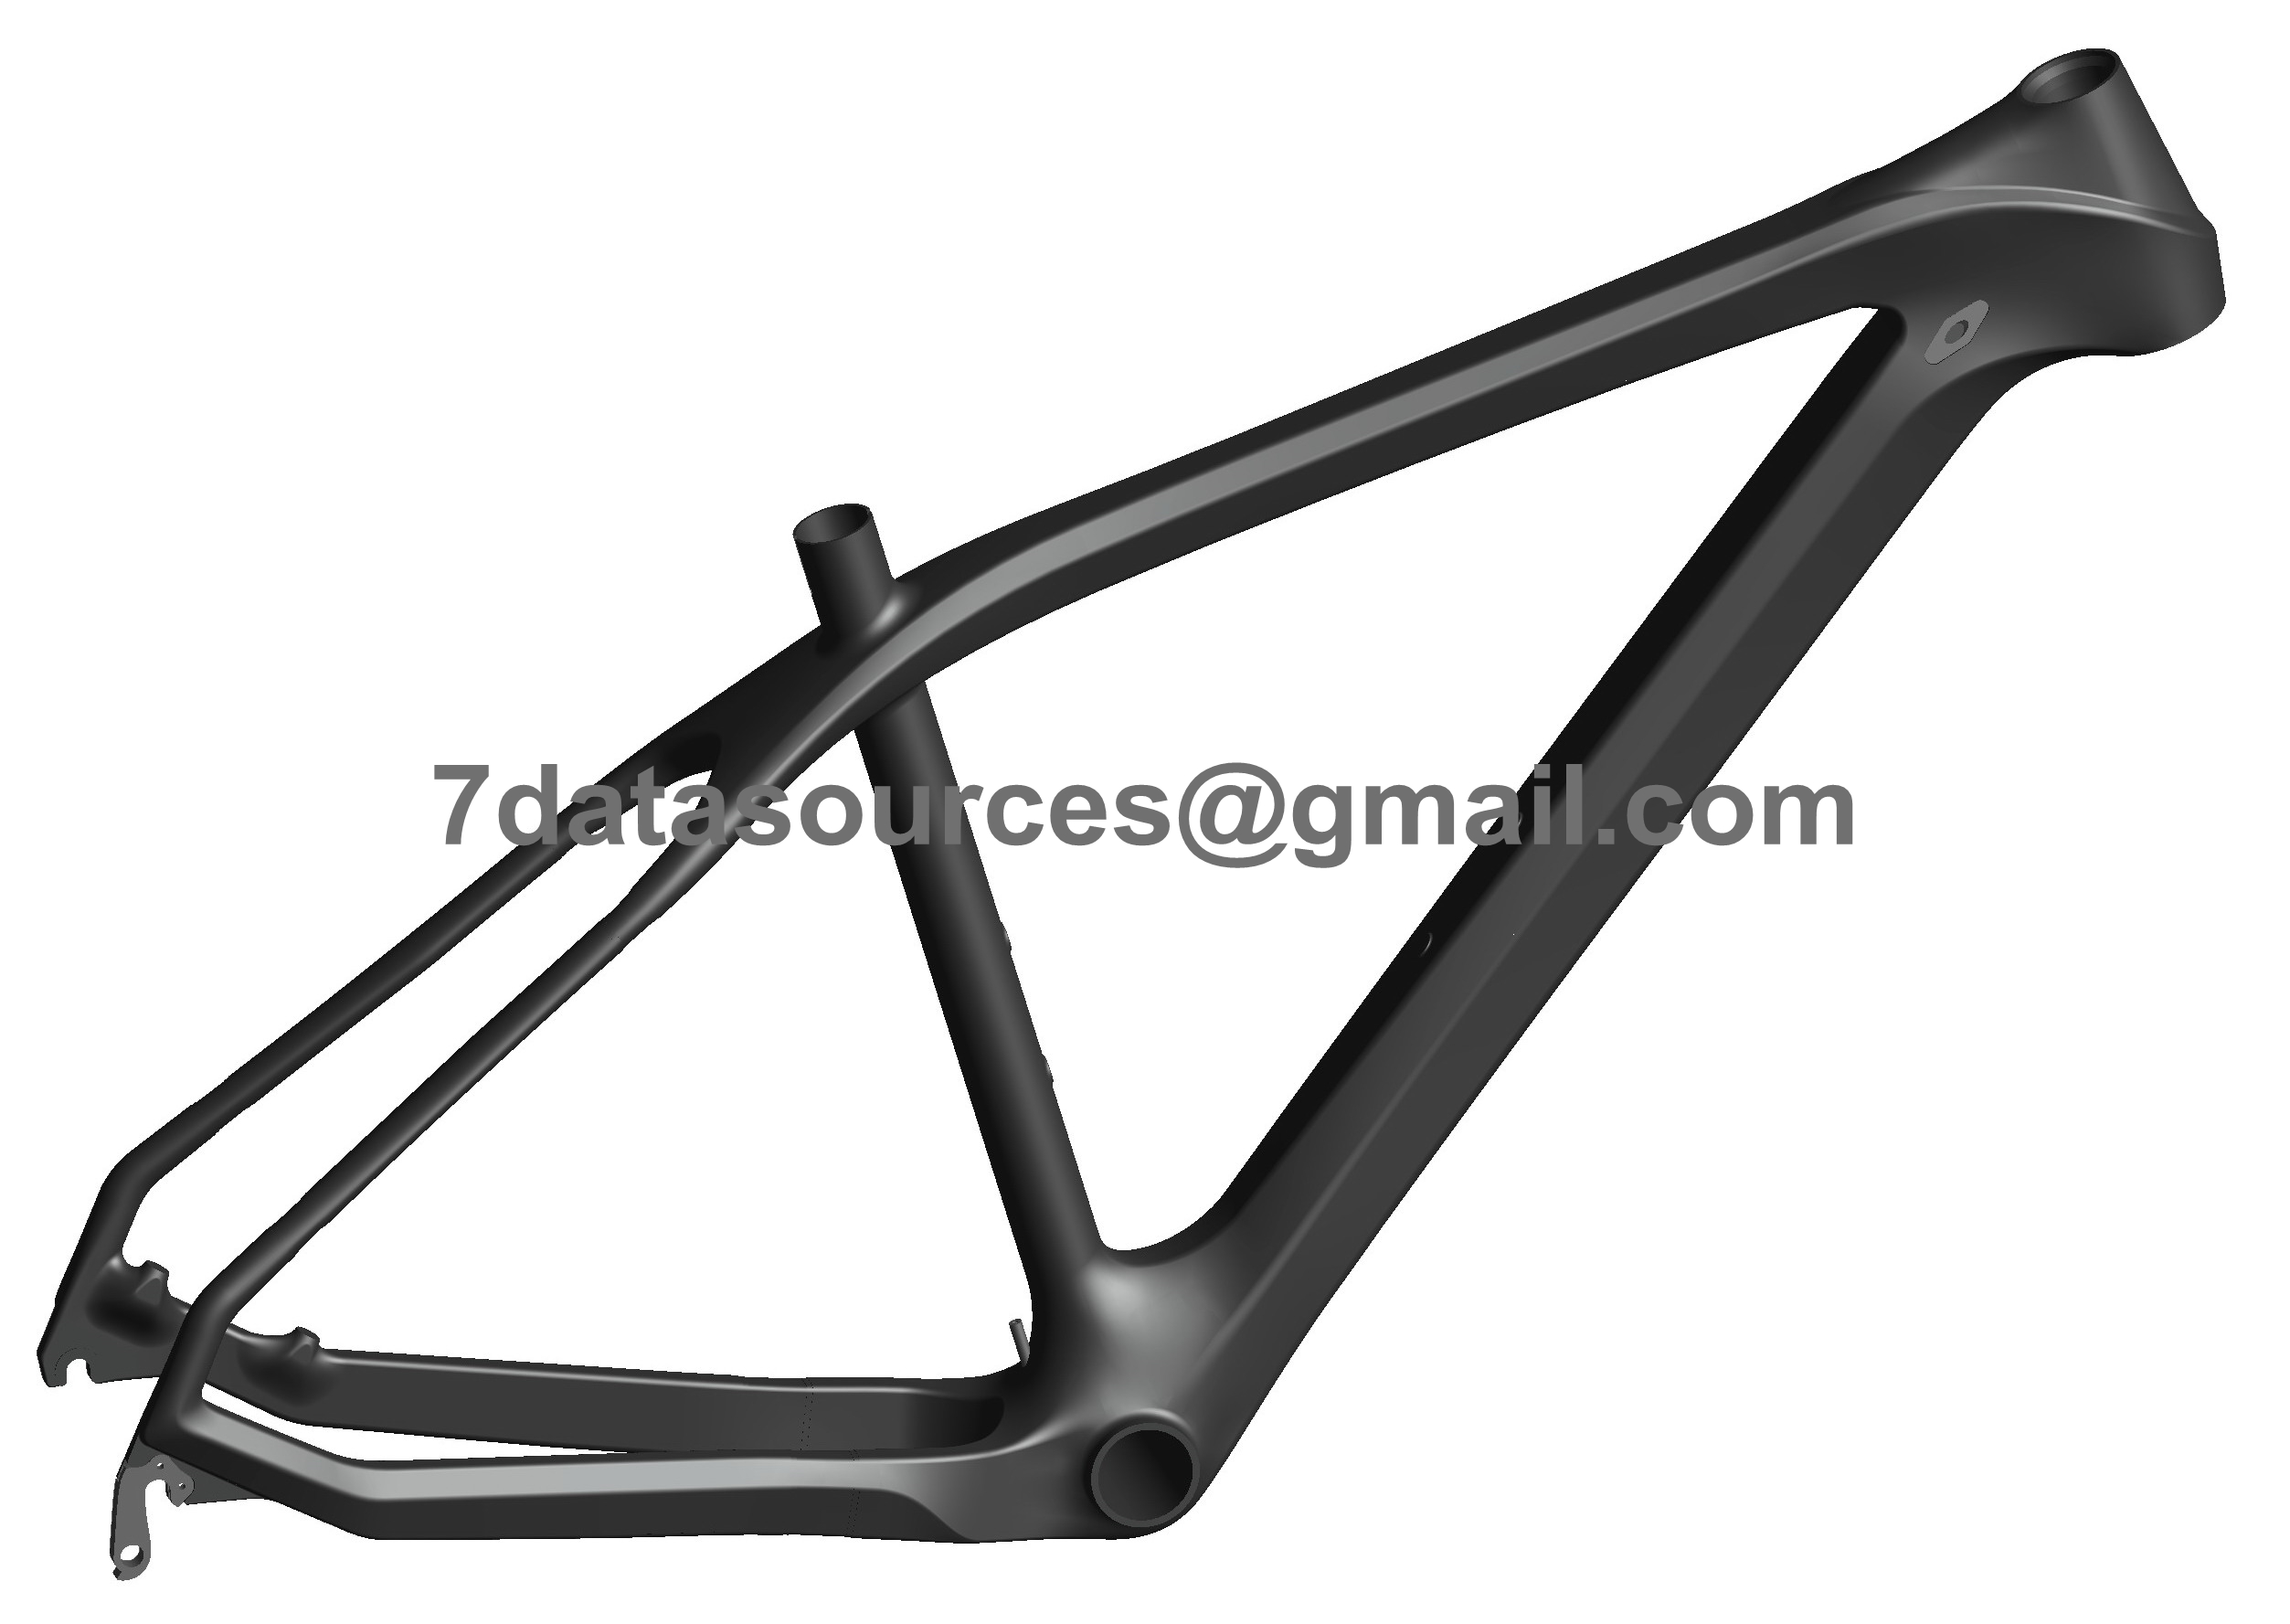 oem paint customized mtb mountain bike bicycle carbon frame no decals